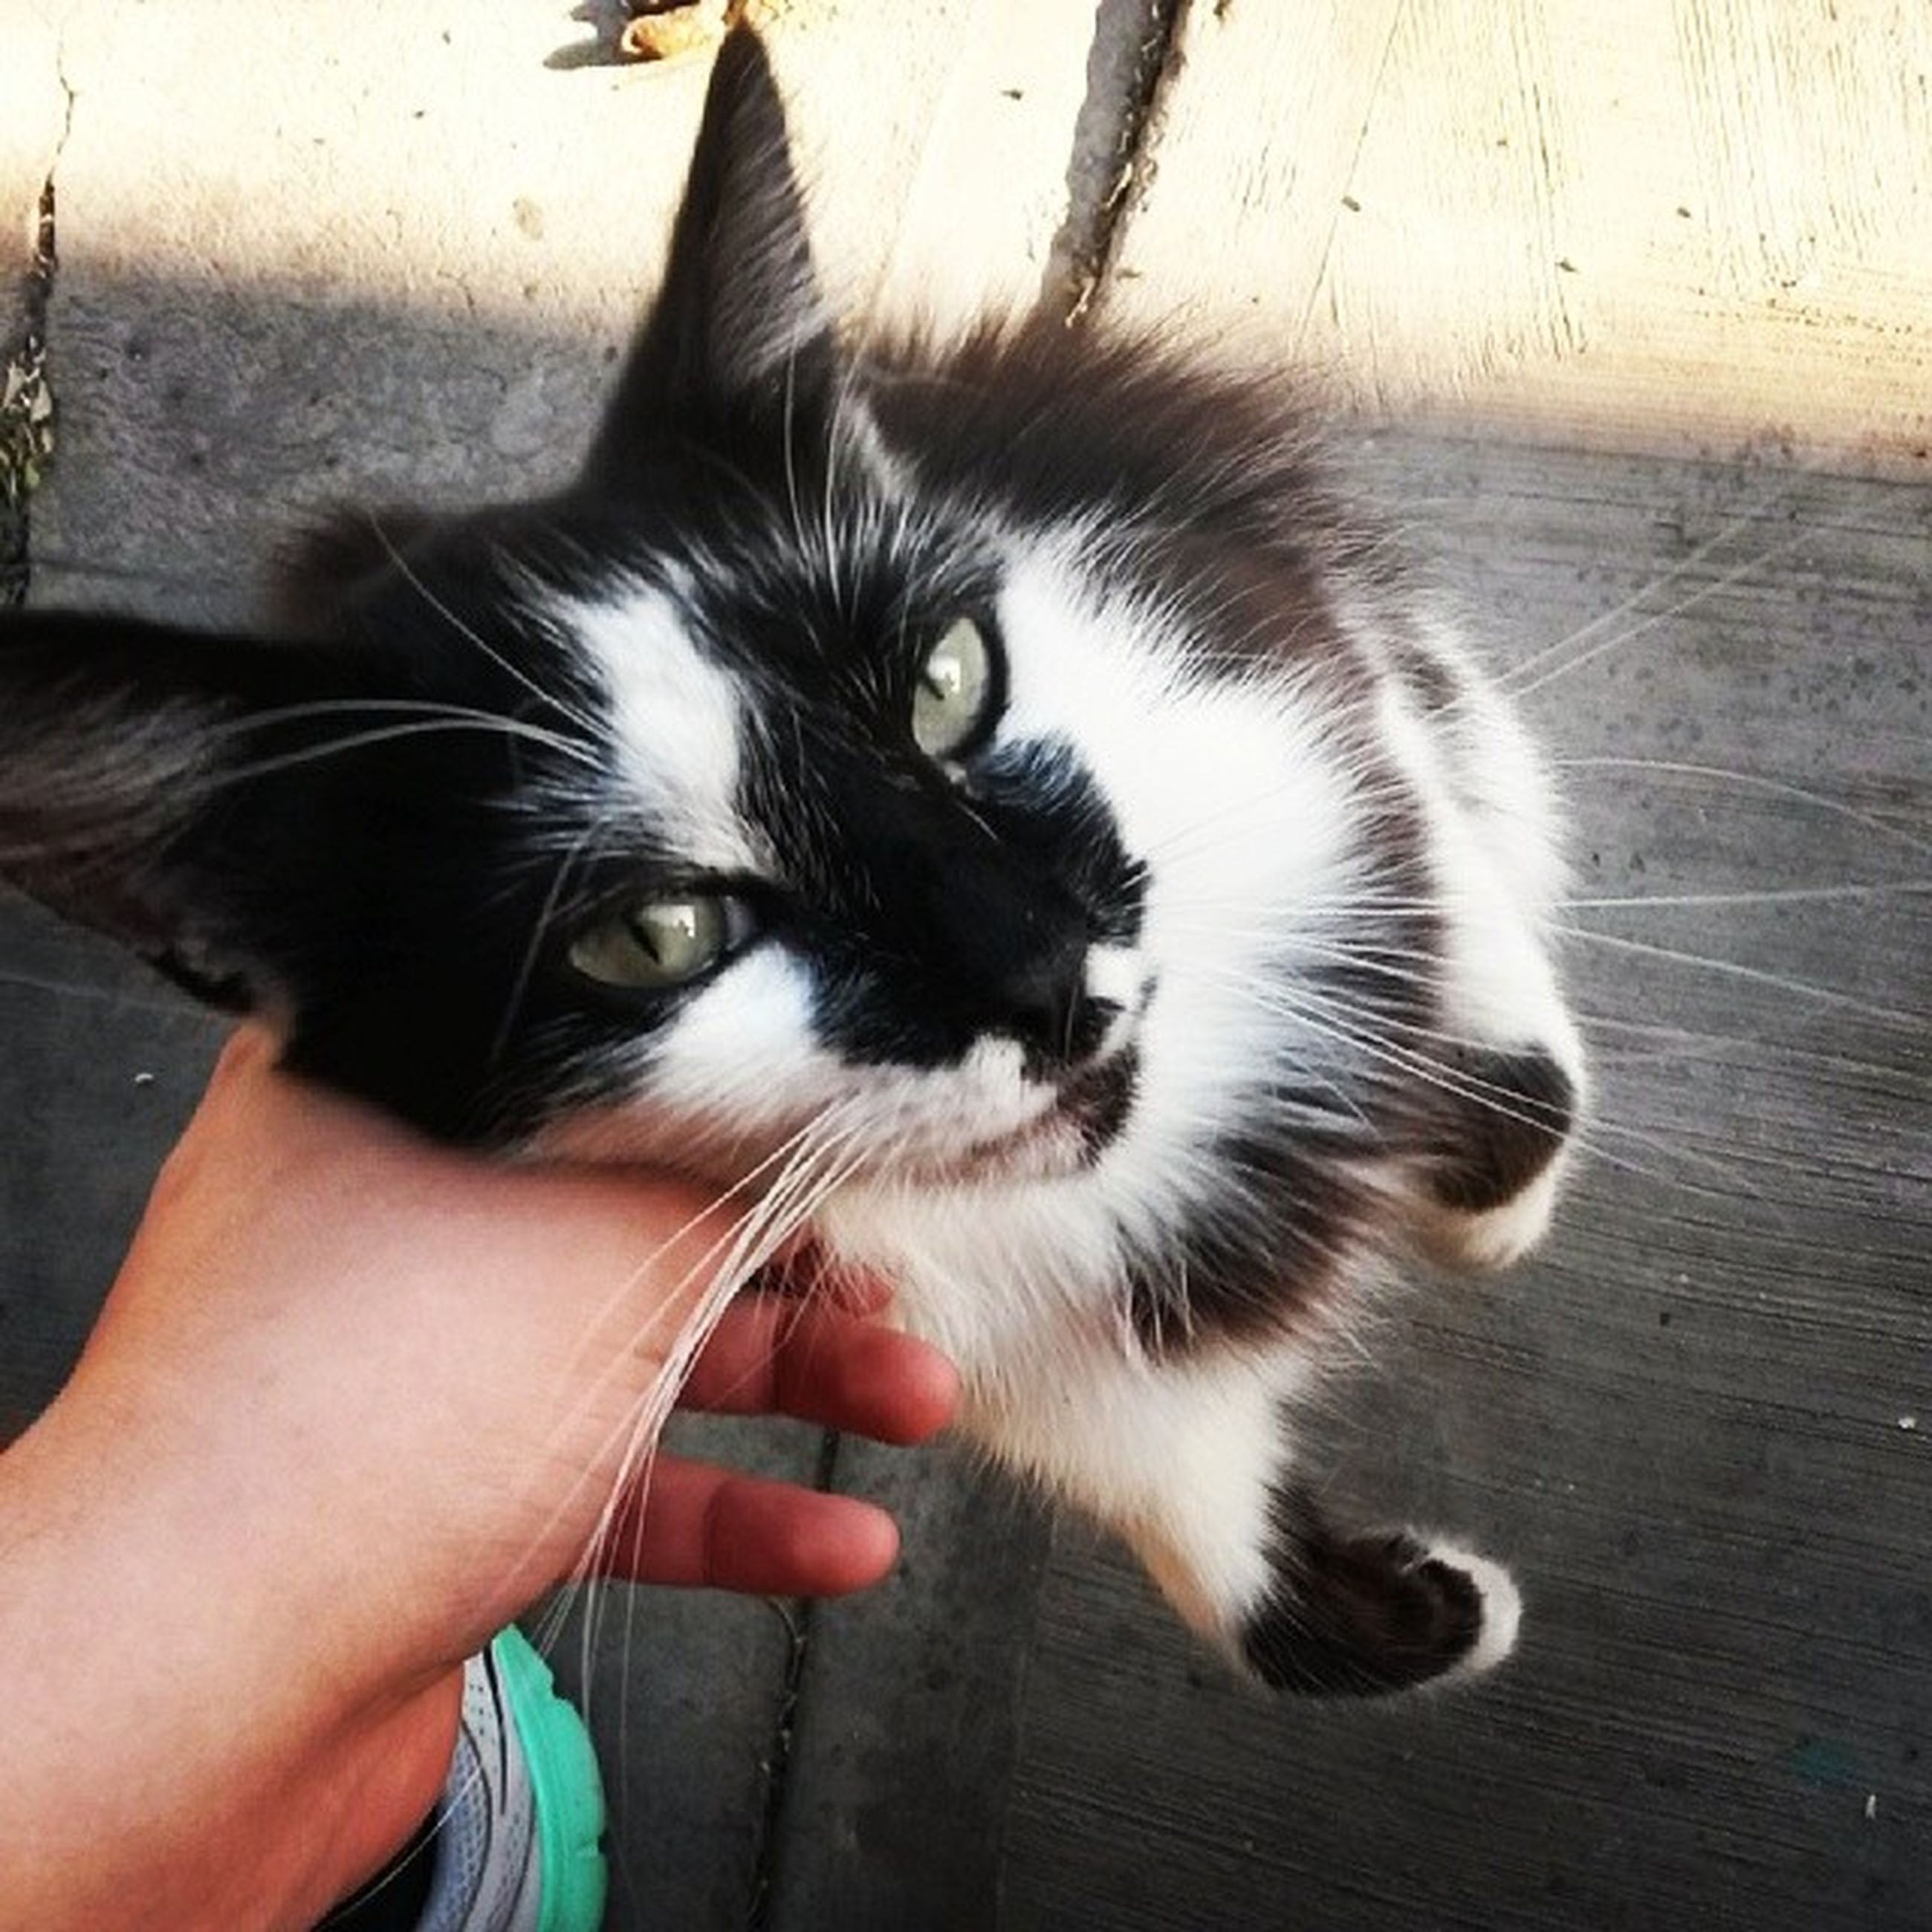 pets, domestic animals, one animal, animal themes, mammal, domestic cat, person, looking at camera, dog, portrait, pet owner, part of, lifestyles, whisker, unrecognizable person, cat, holding